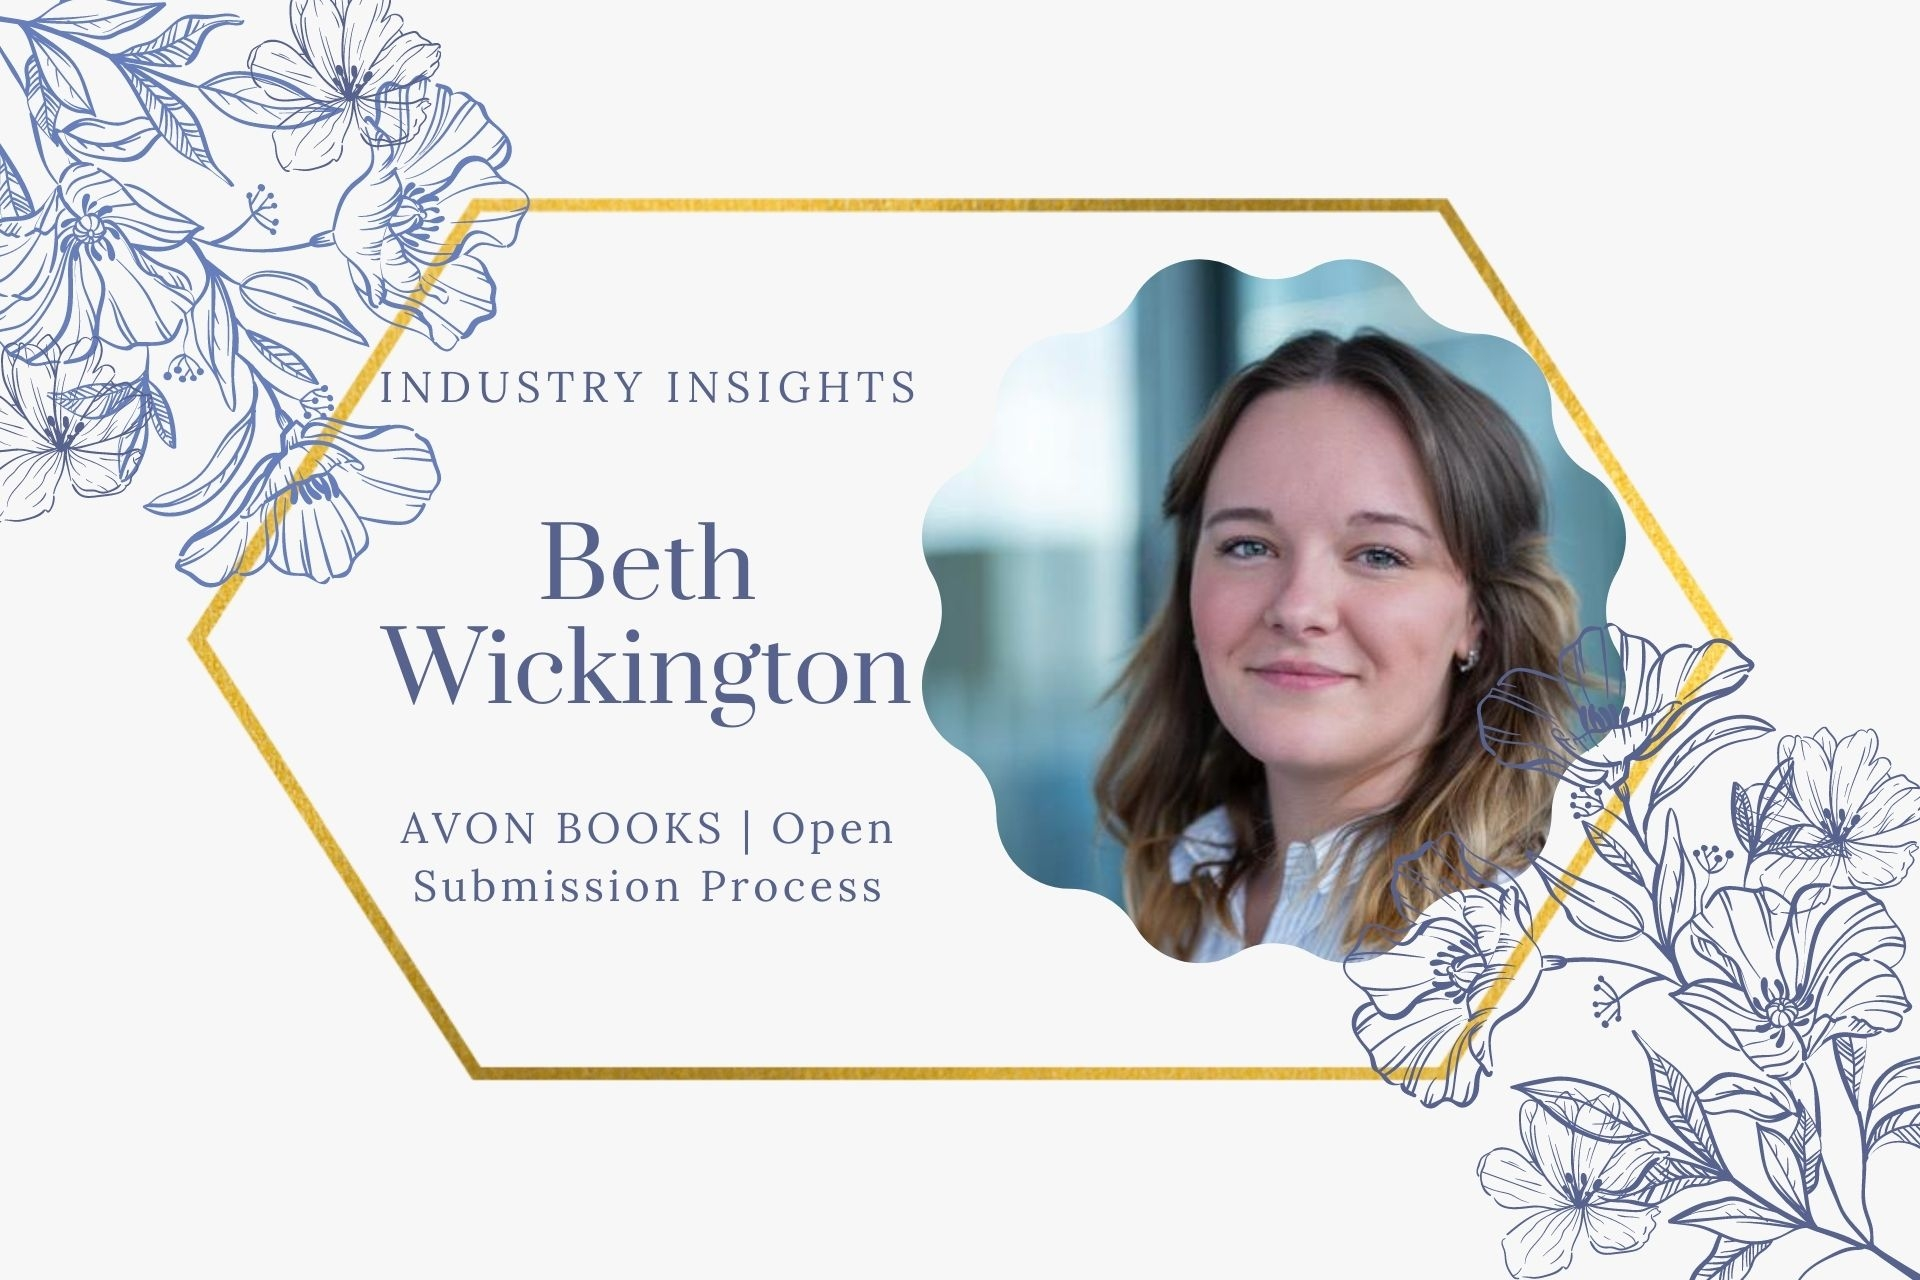 Industry Insight: Q&A with Beth Wickington (Avon Books Open Submission Process)